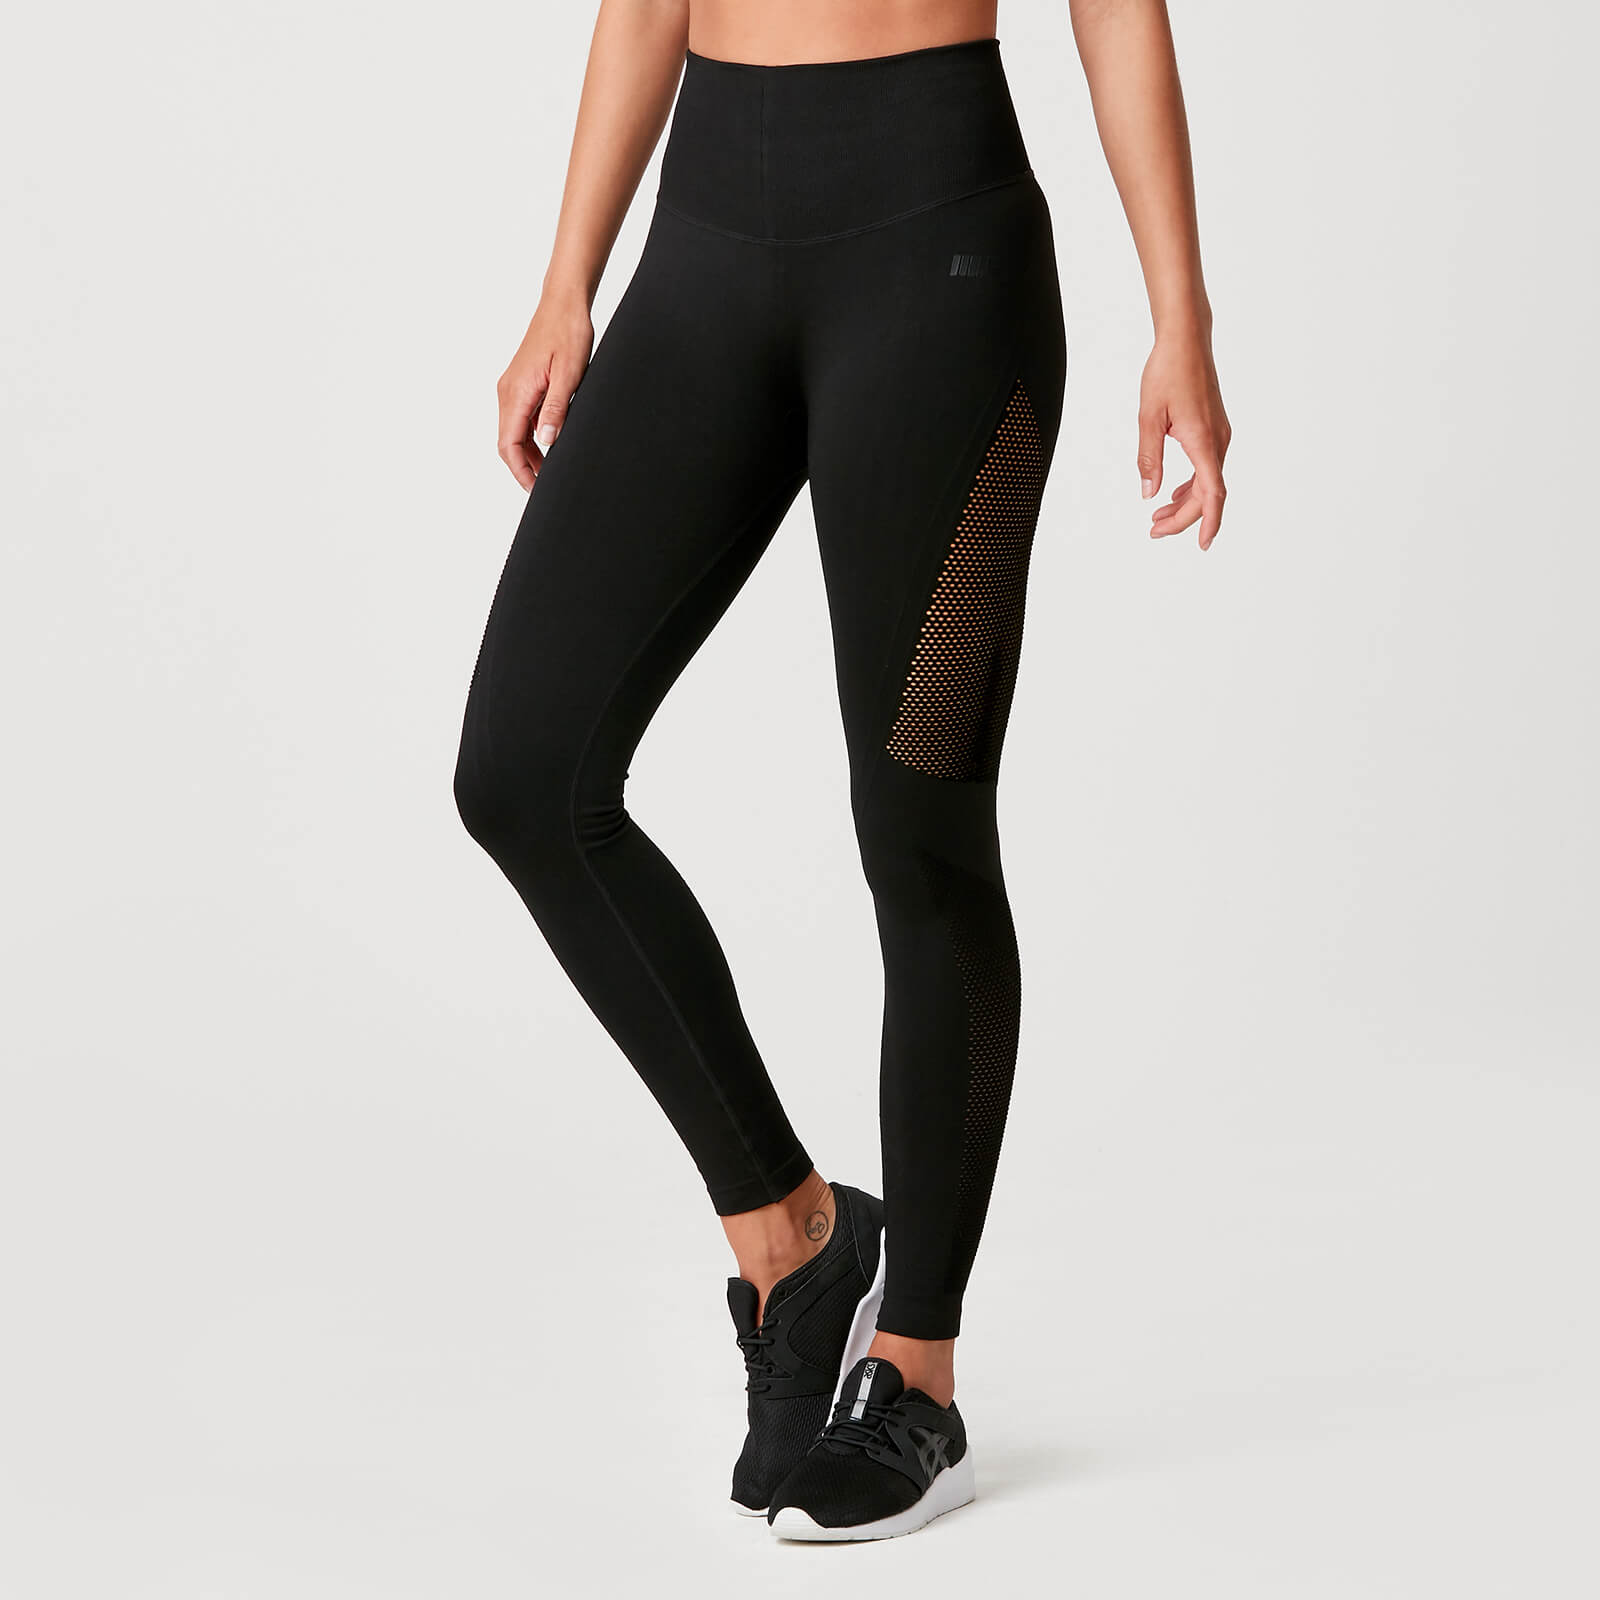 Luxe Seamless Leggings - Black - XS